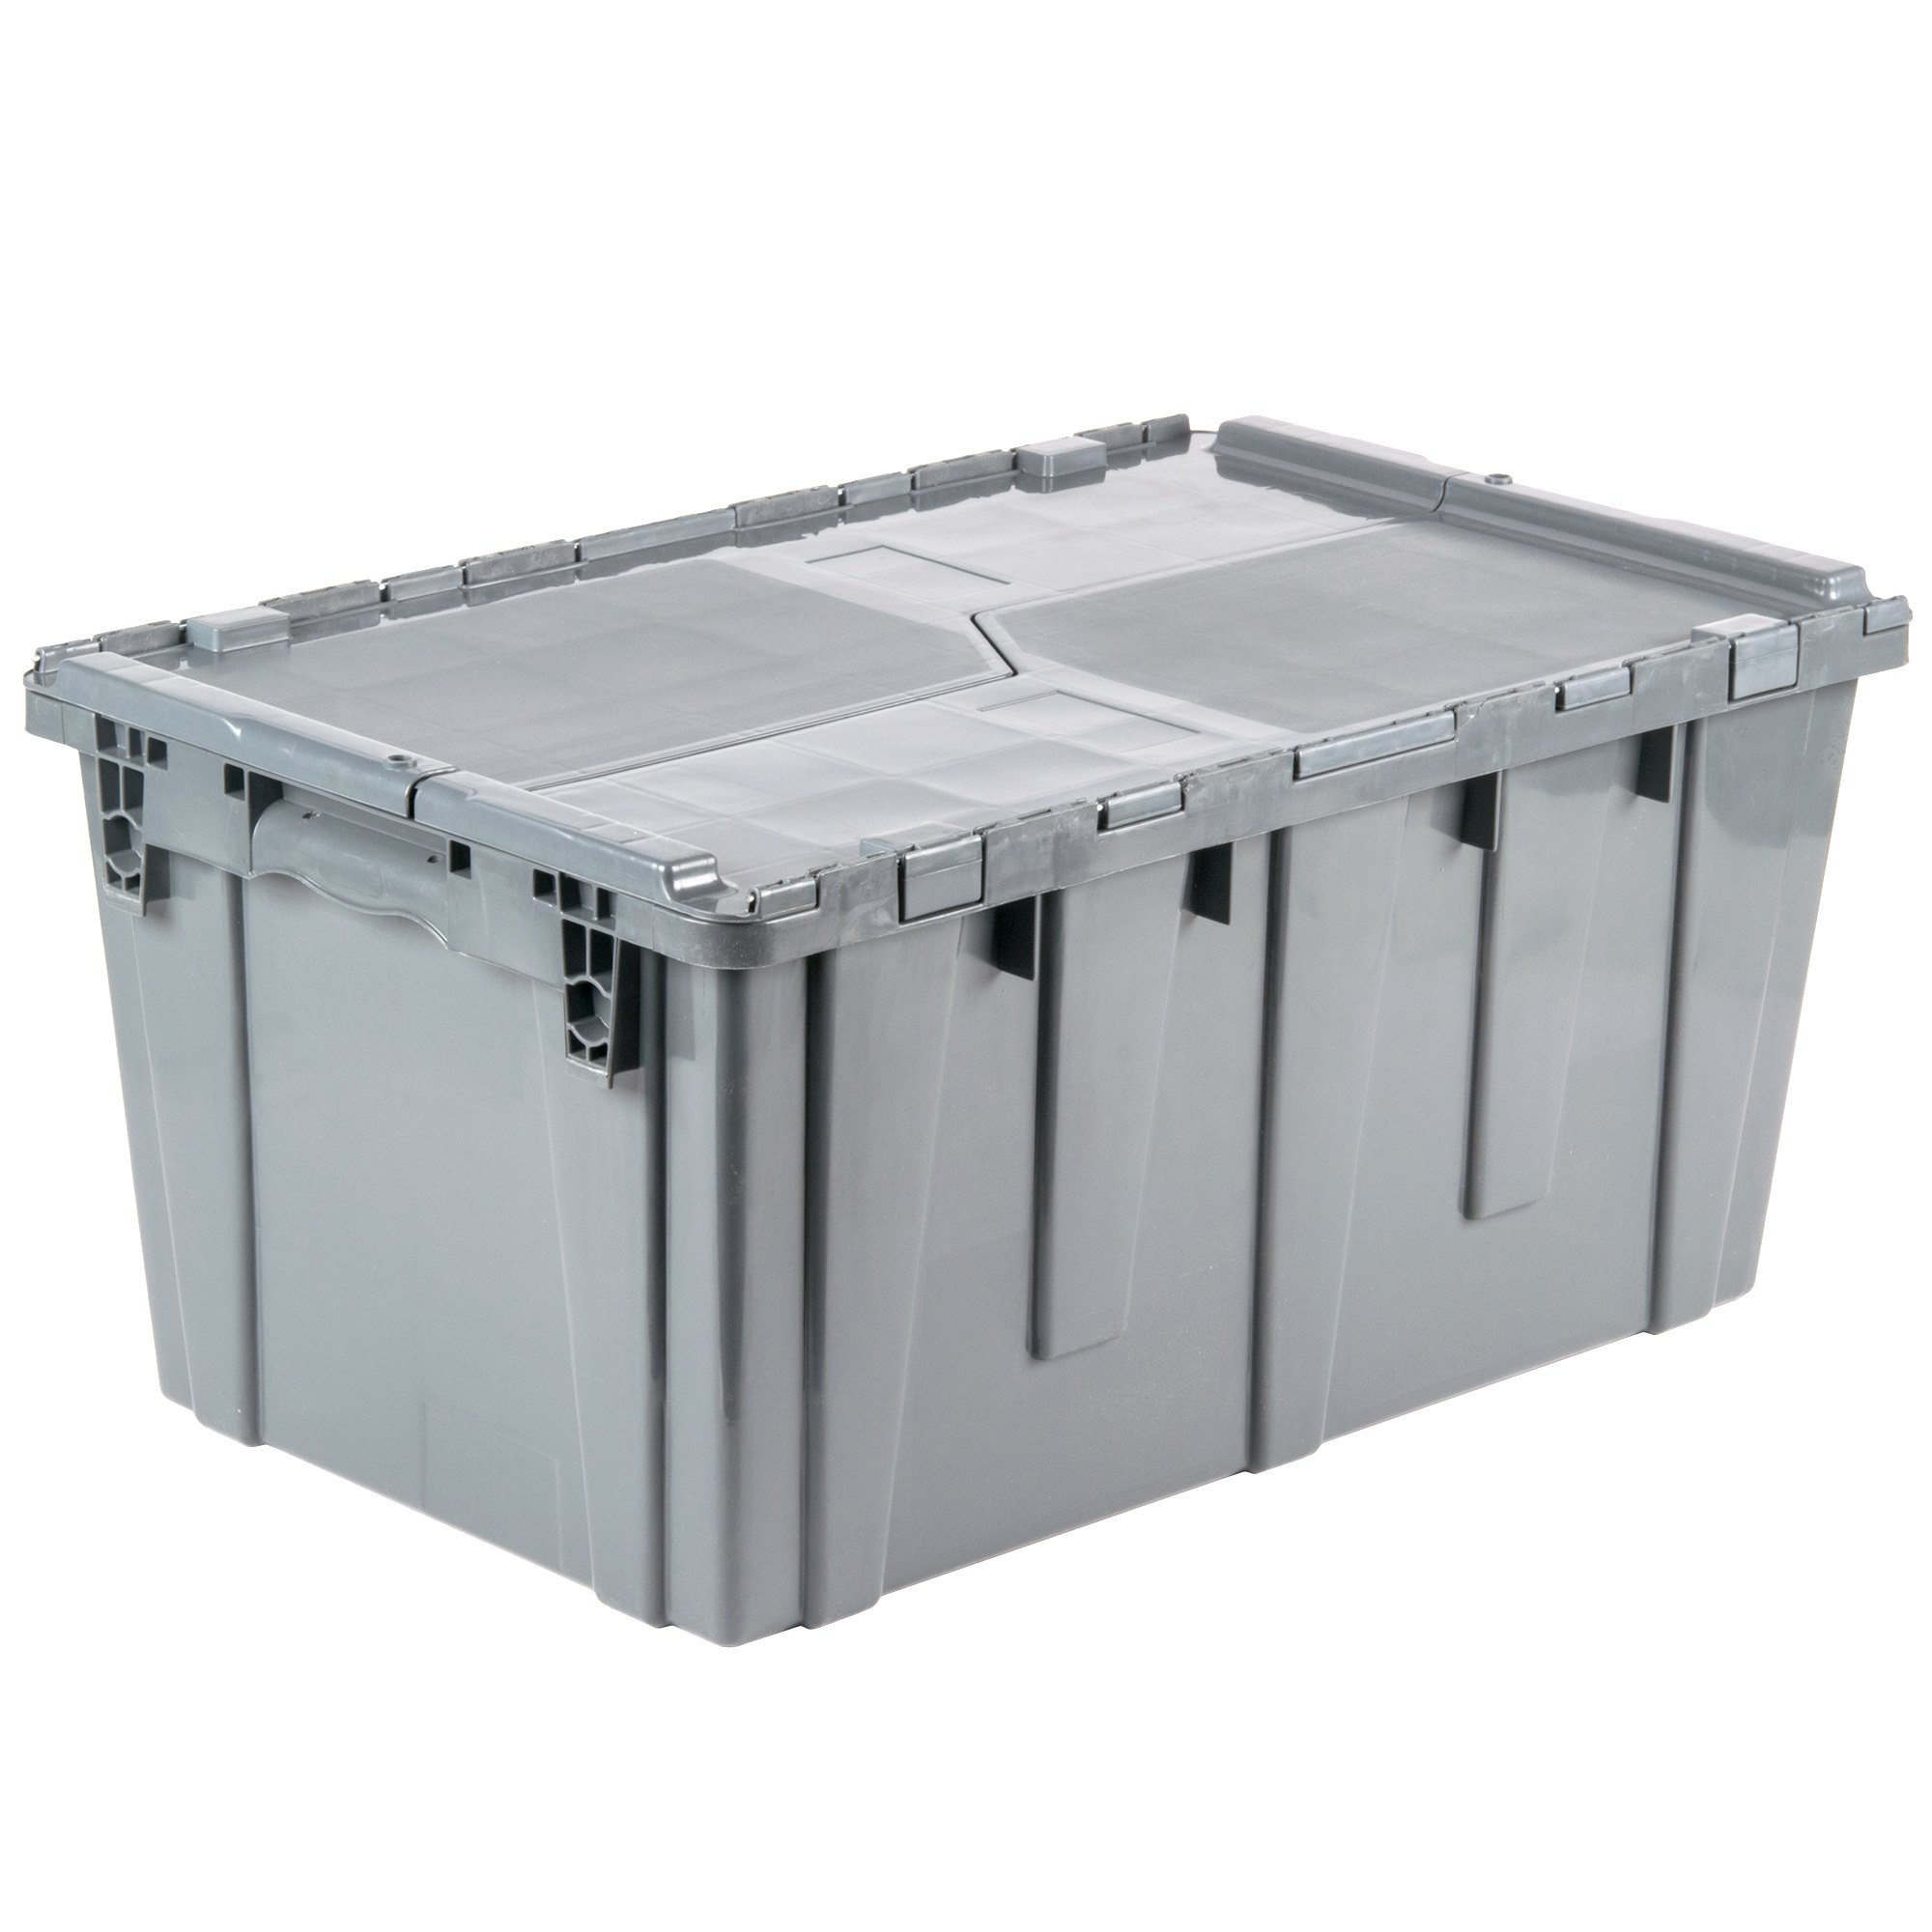 Gray Chafer / Storage Box Size 25'' x 15'' x 12''